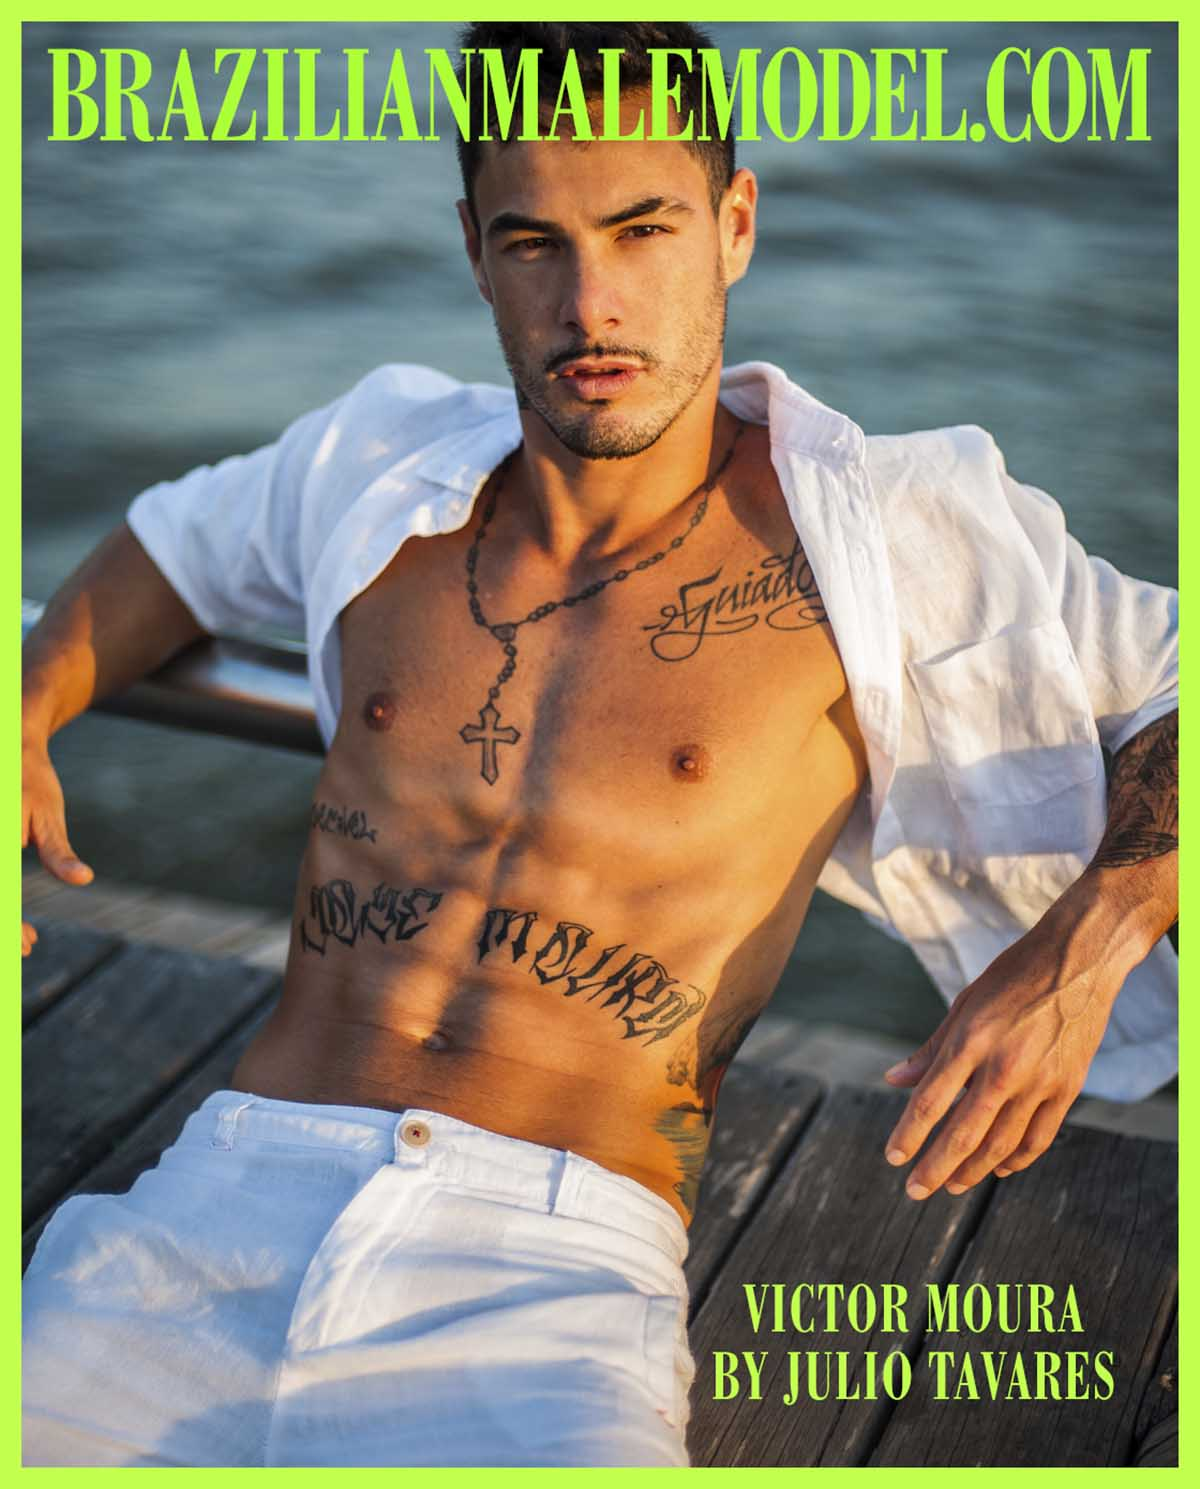 Victor Moura X Julio Tavares X Brazilian Male Model